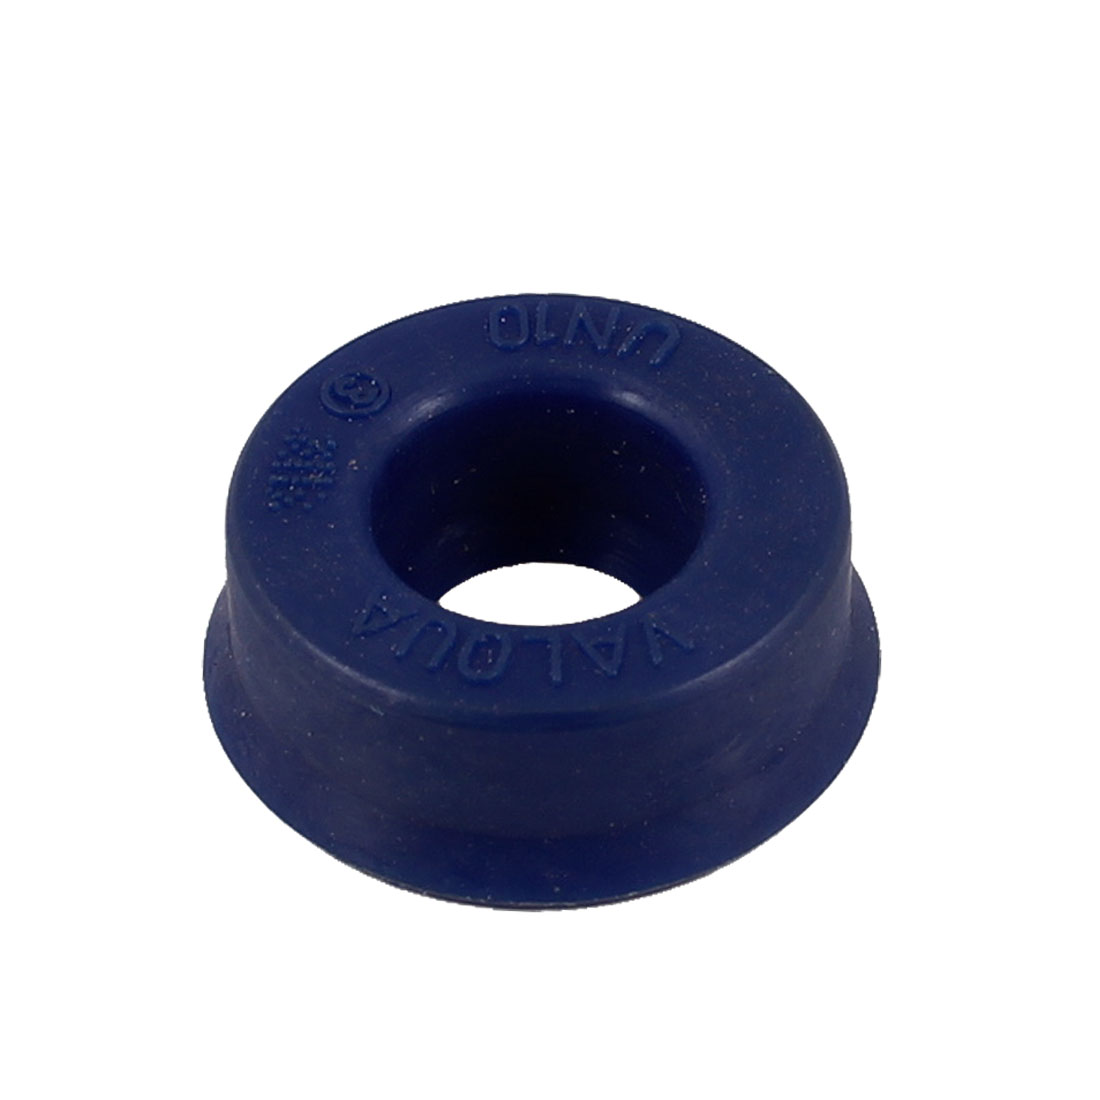 Blue PU 10mm x 20mm x 8mm Double Lip Sealing Cushion Dust Seal Ring